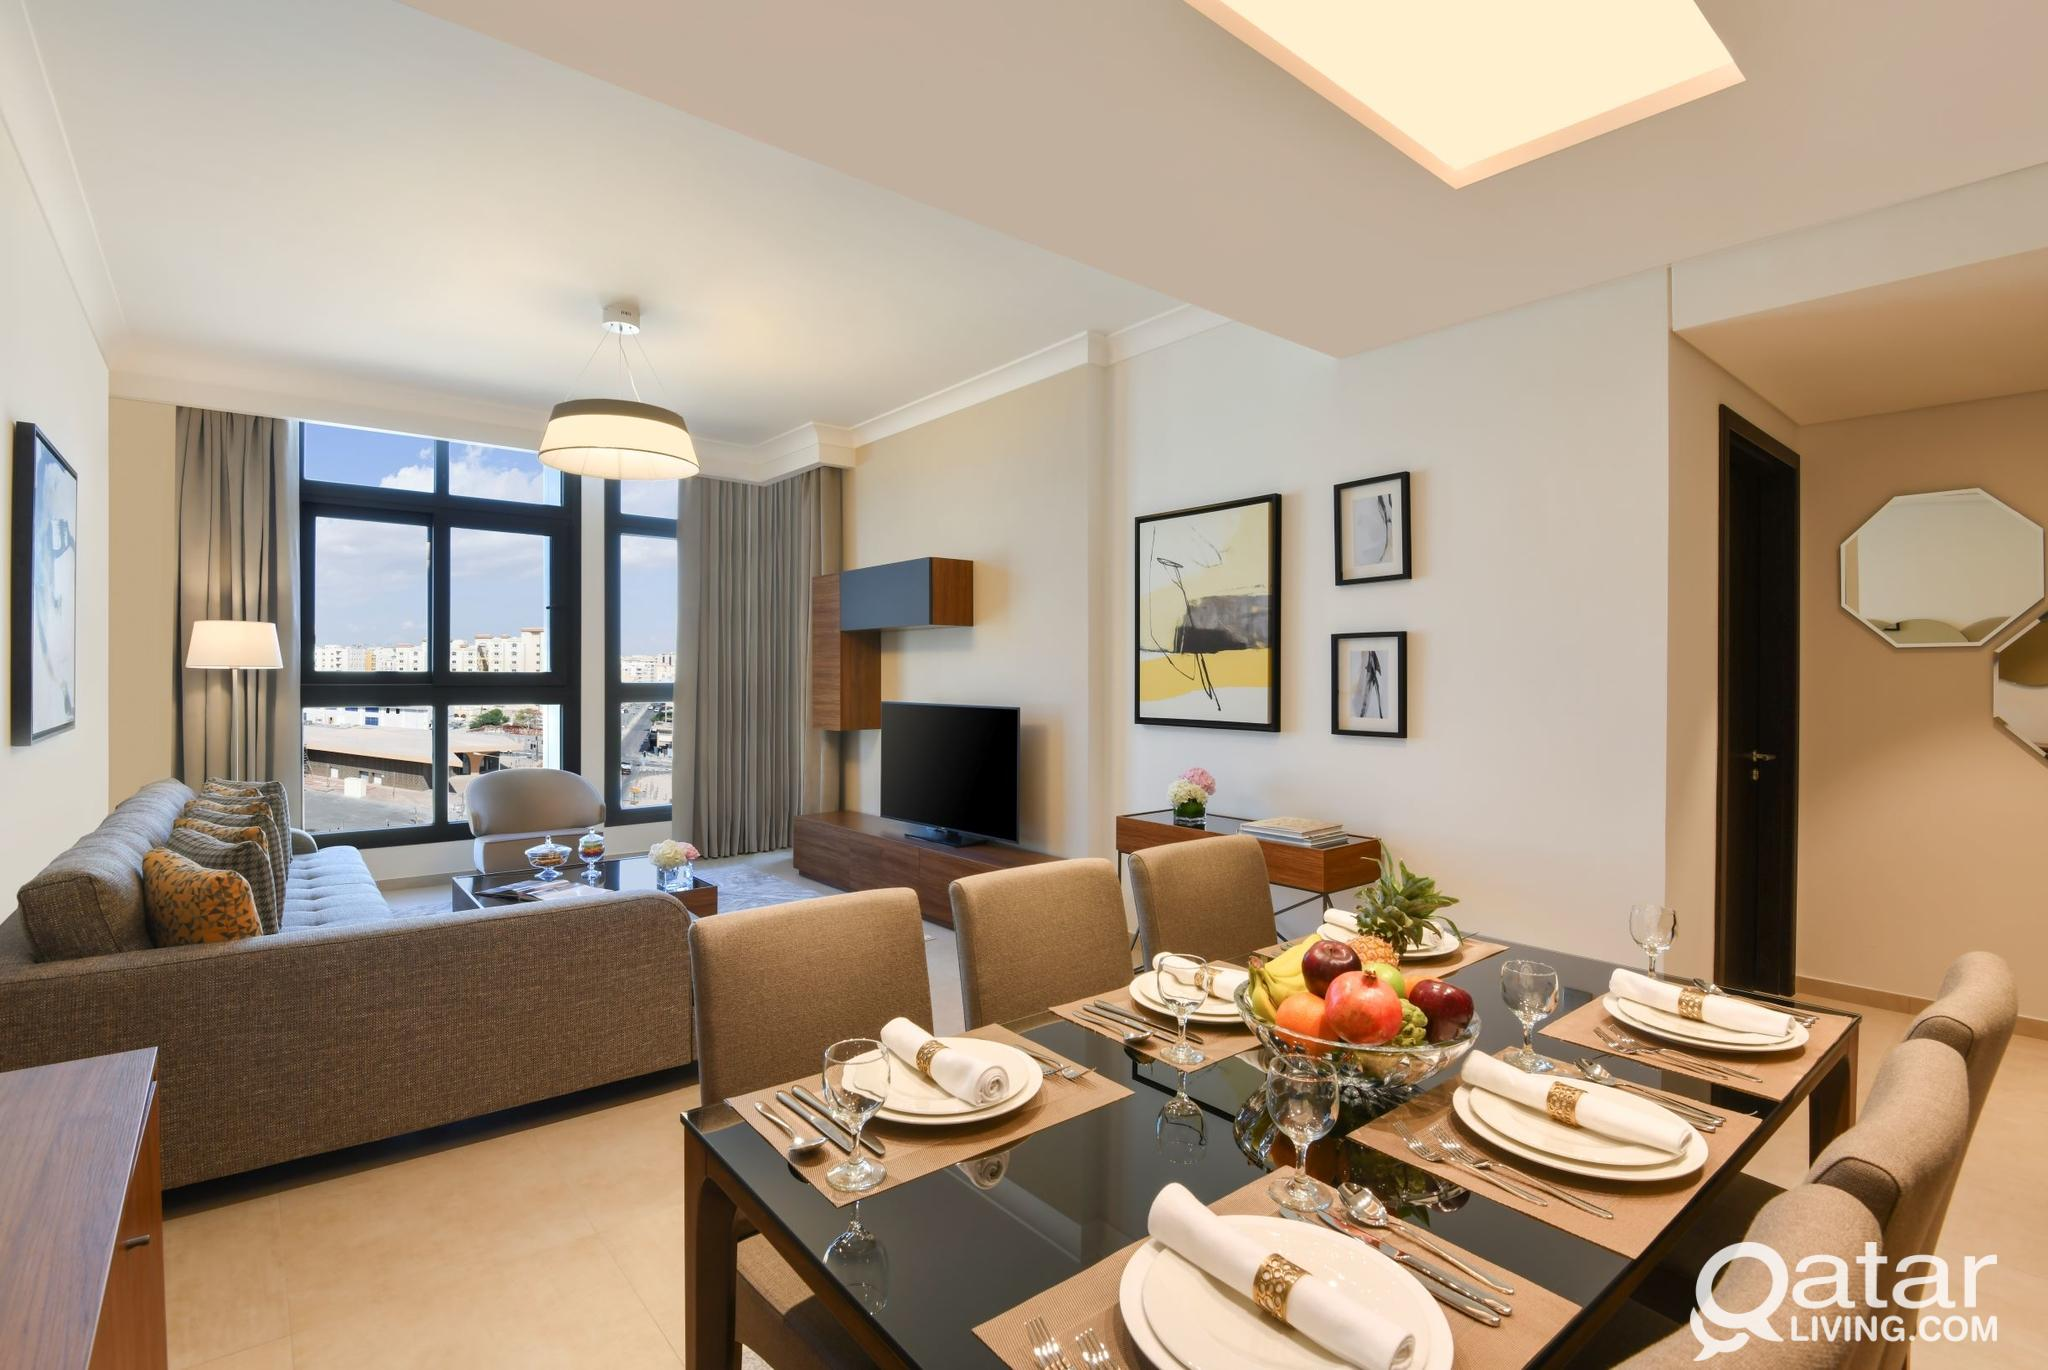 One Bedroom + Free Membership to Luxurious Facilit